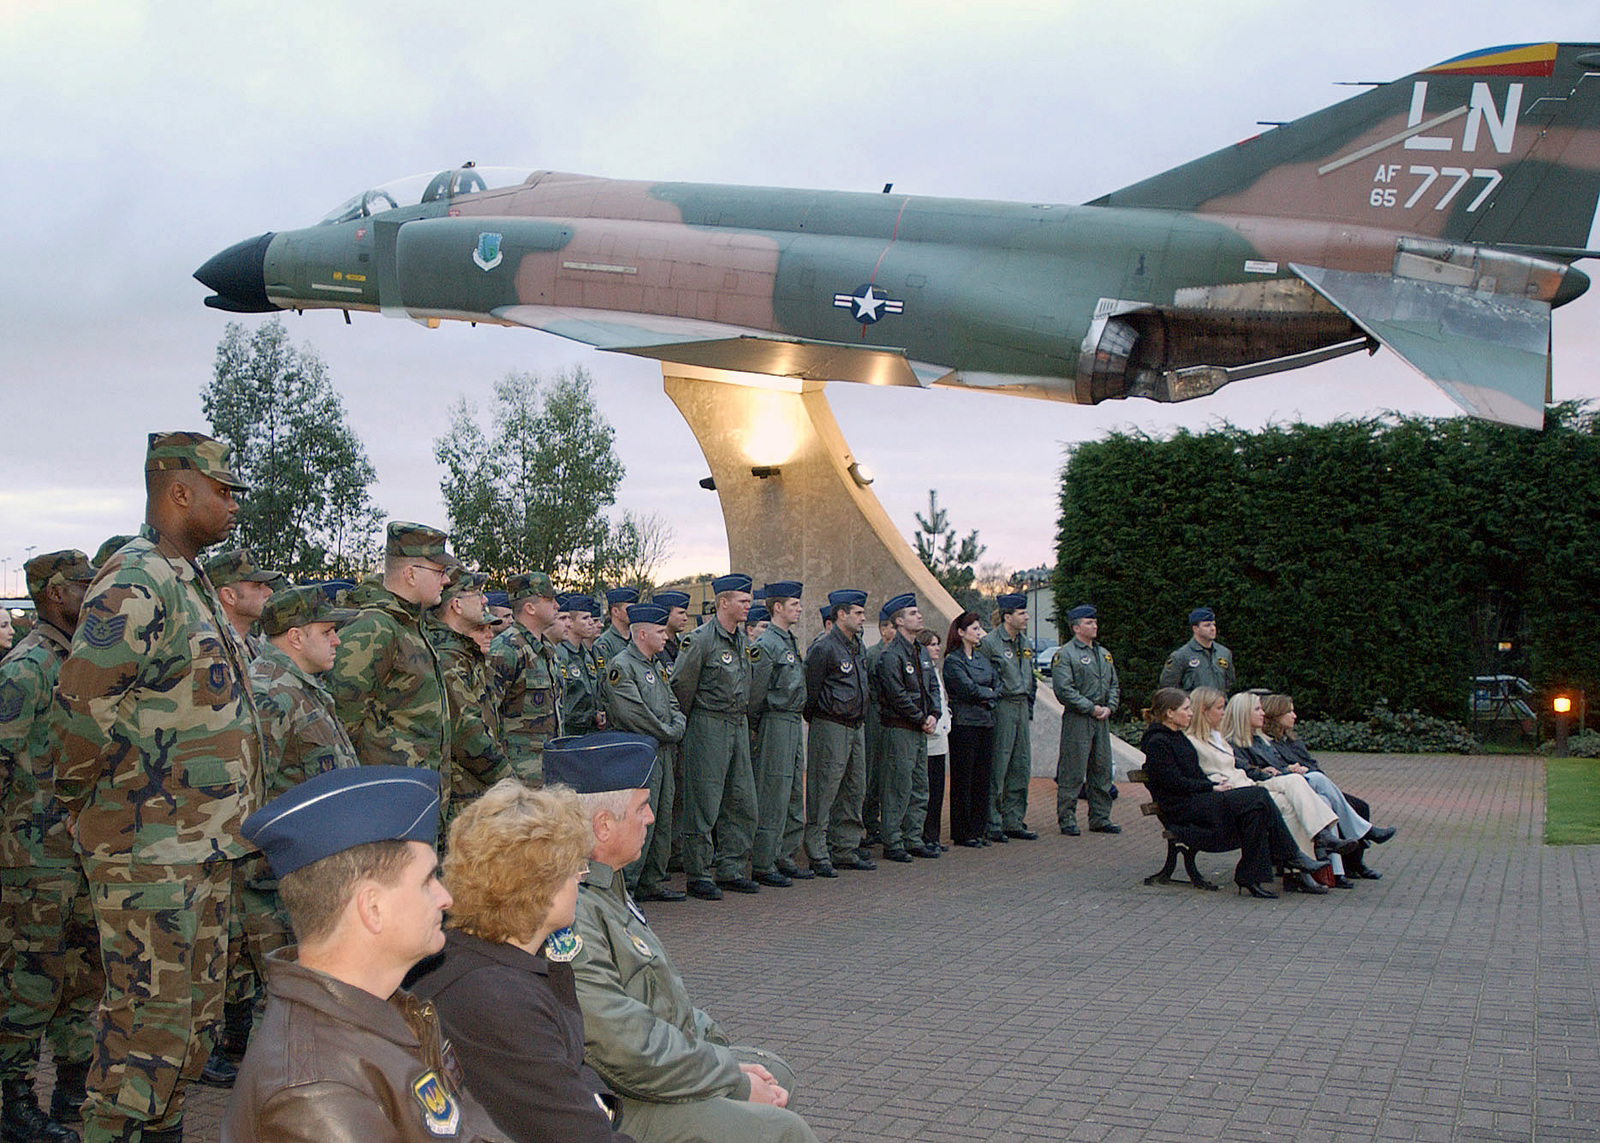 """Under the F-4C Phantom II static display, members of the 493rd Fighter Squadron (FS), and 48th Operations Group (OG), 48th Fighter Wing (FW), Royal Air Force Lakenheath, United Kingdom, listen to the chaplain during the ceremony held at the Wings of Liberty Park. The ceremony is held to honor and remember Lieutenant Colonel (LCOL) Kenneth """"Buster"""" Hyvonen and Captain (CAPT) Kirk """"Jammer"""" Jones, whose F-15Cs crashed in the Scottish Highlands a year ago"""